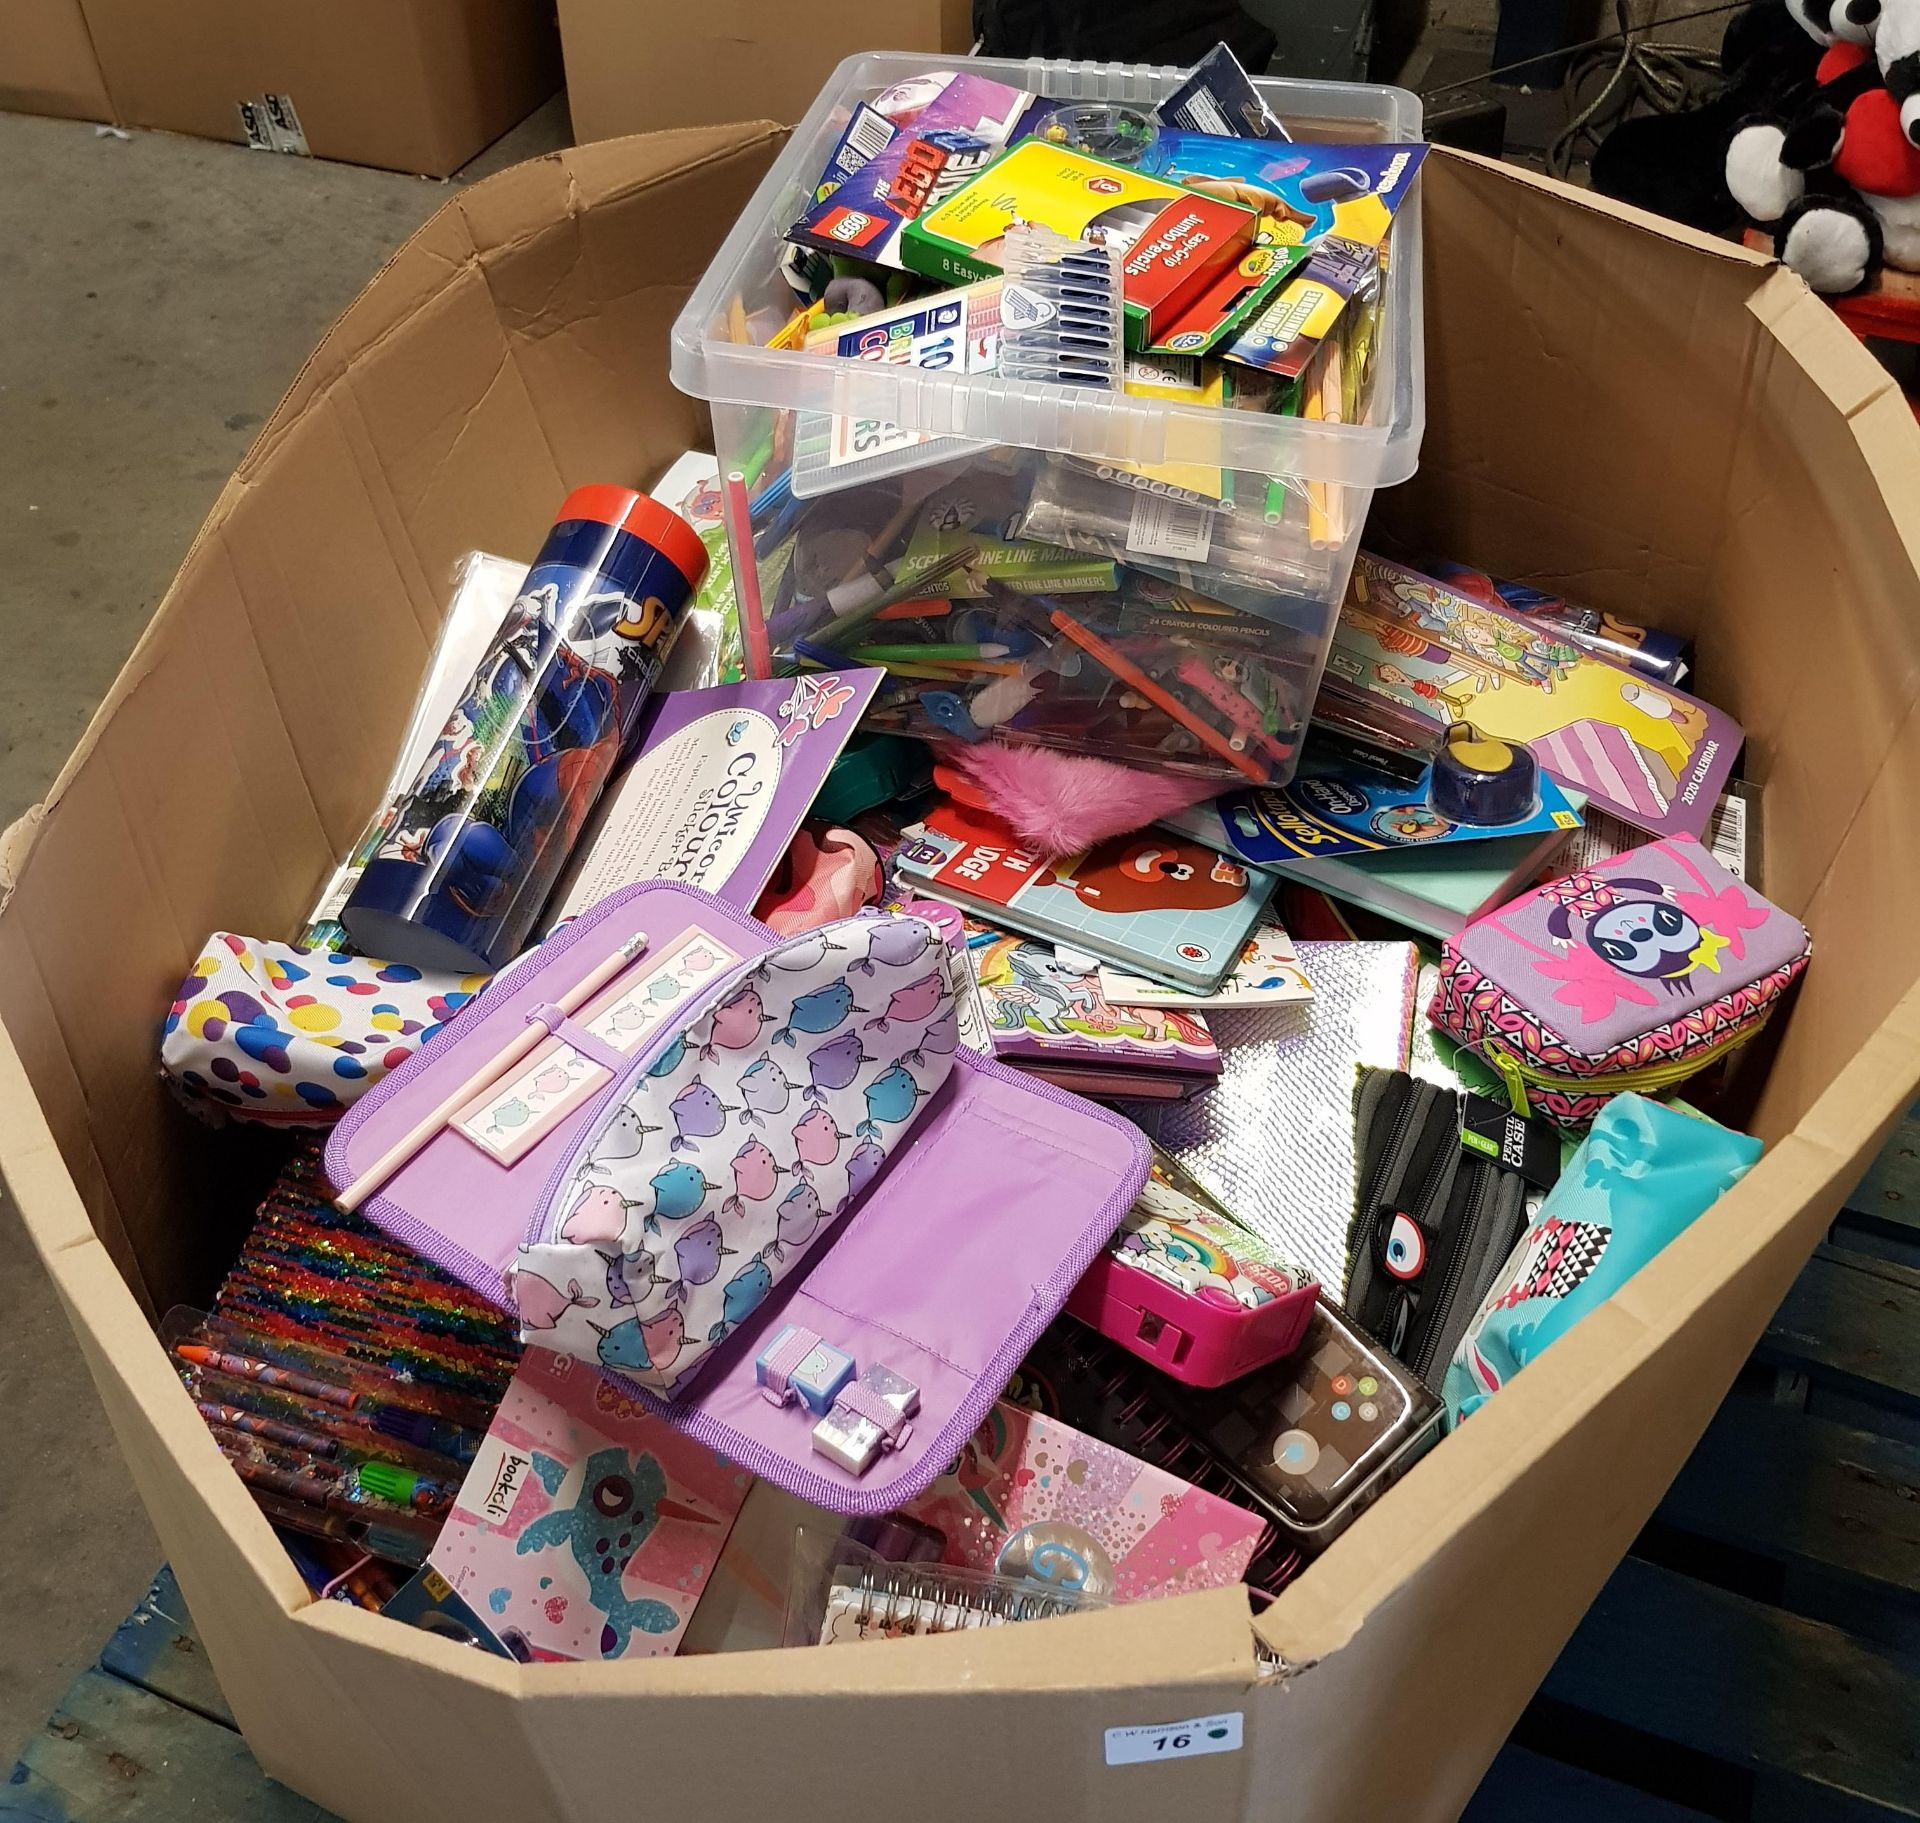 Lot 16 - CONTENTS OF LARGE BOX - MIXED STATIONARY TO INCLUDE BOOKS, CALENDARS, PENS,